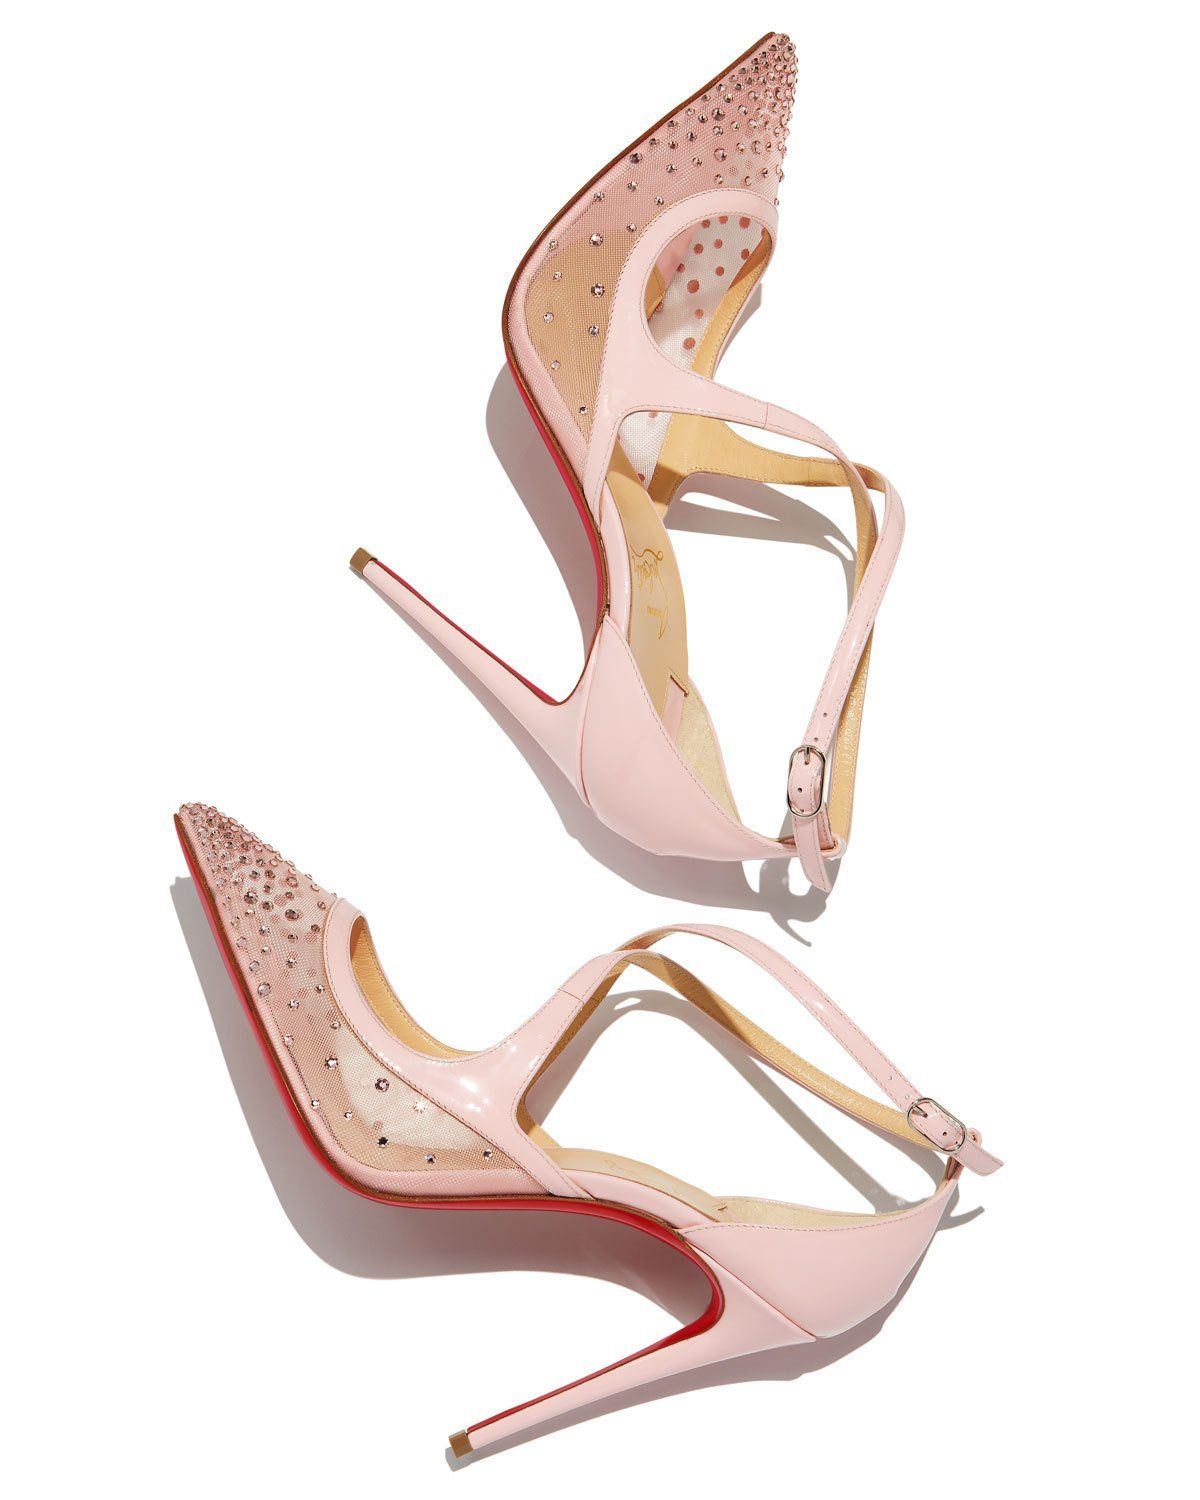 half off 1725f 481e2 Christian Louboutin Twistissima Crisscross Red Sole Pumps ...